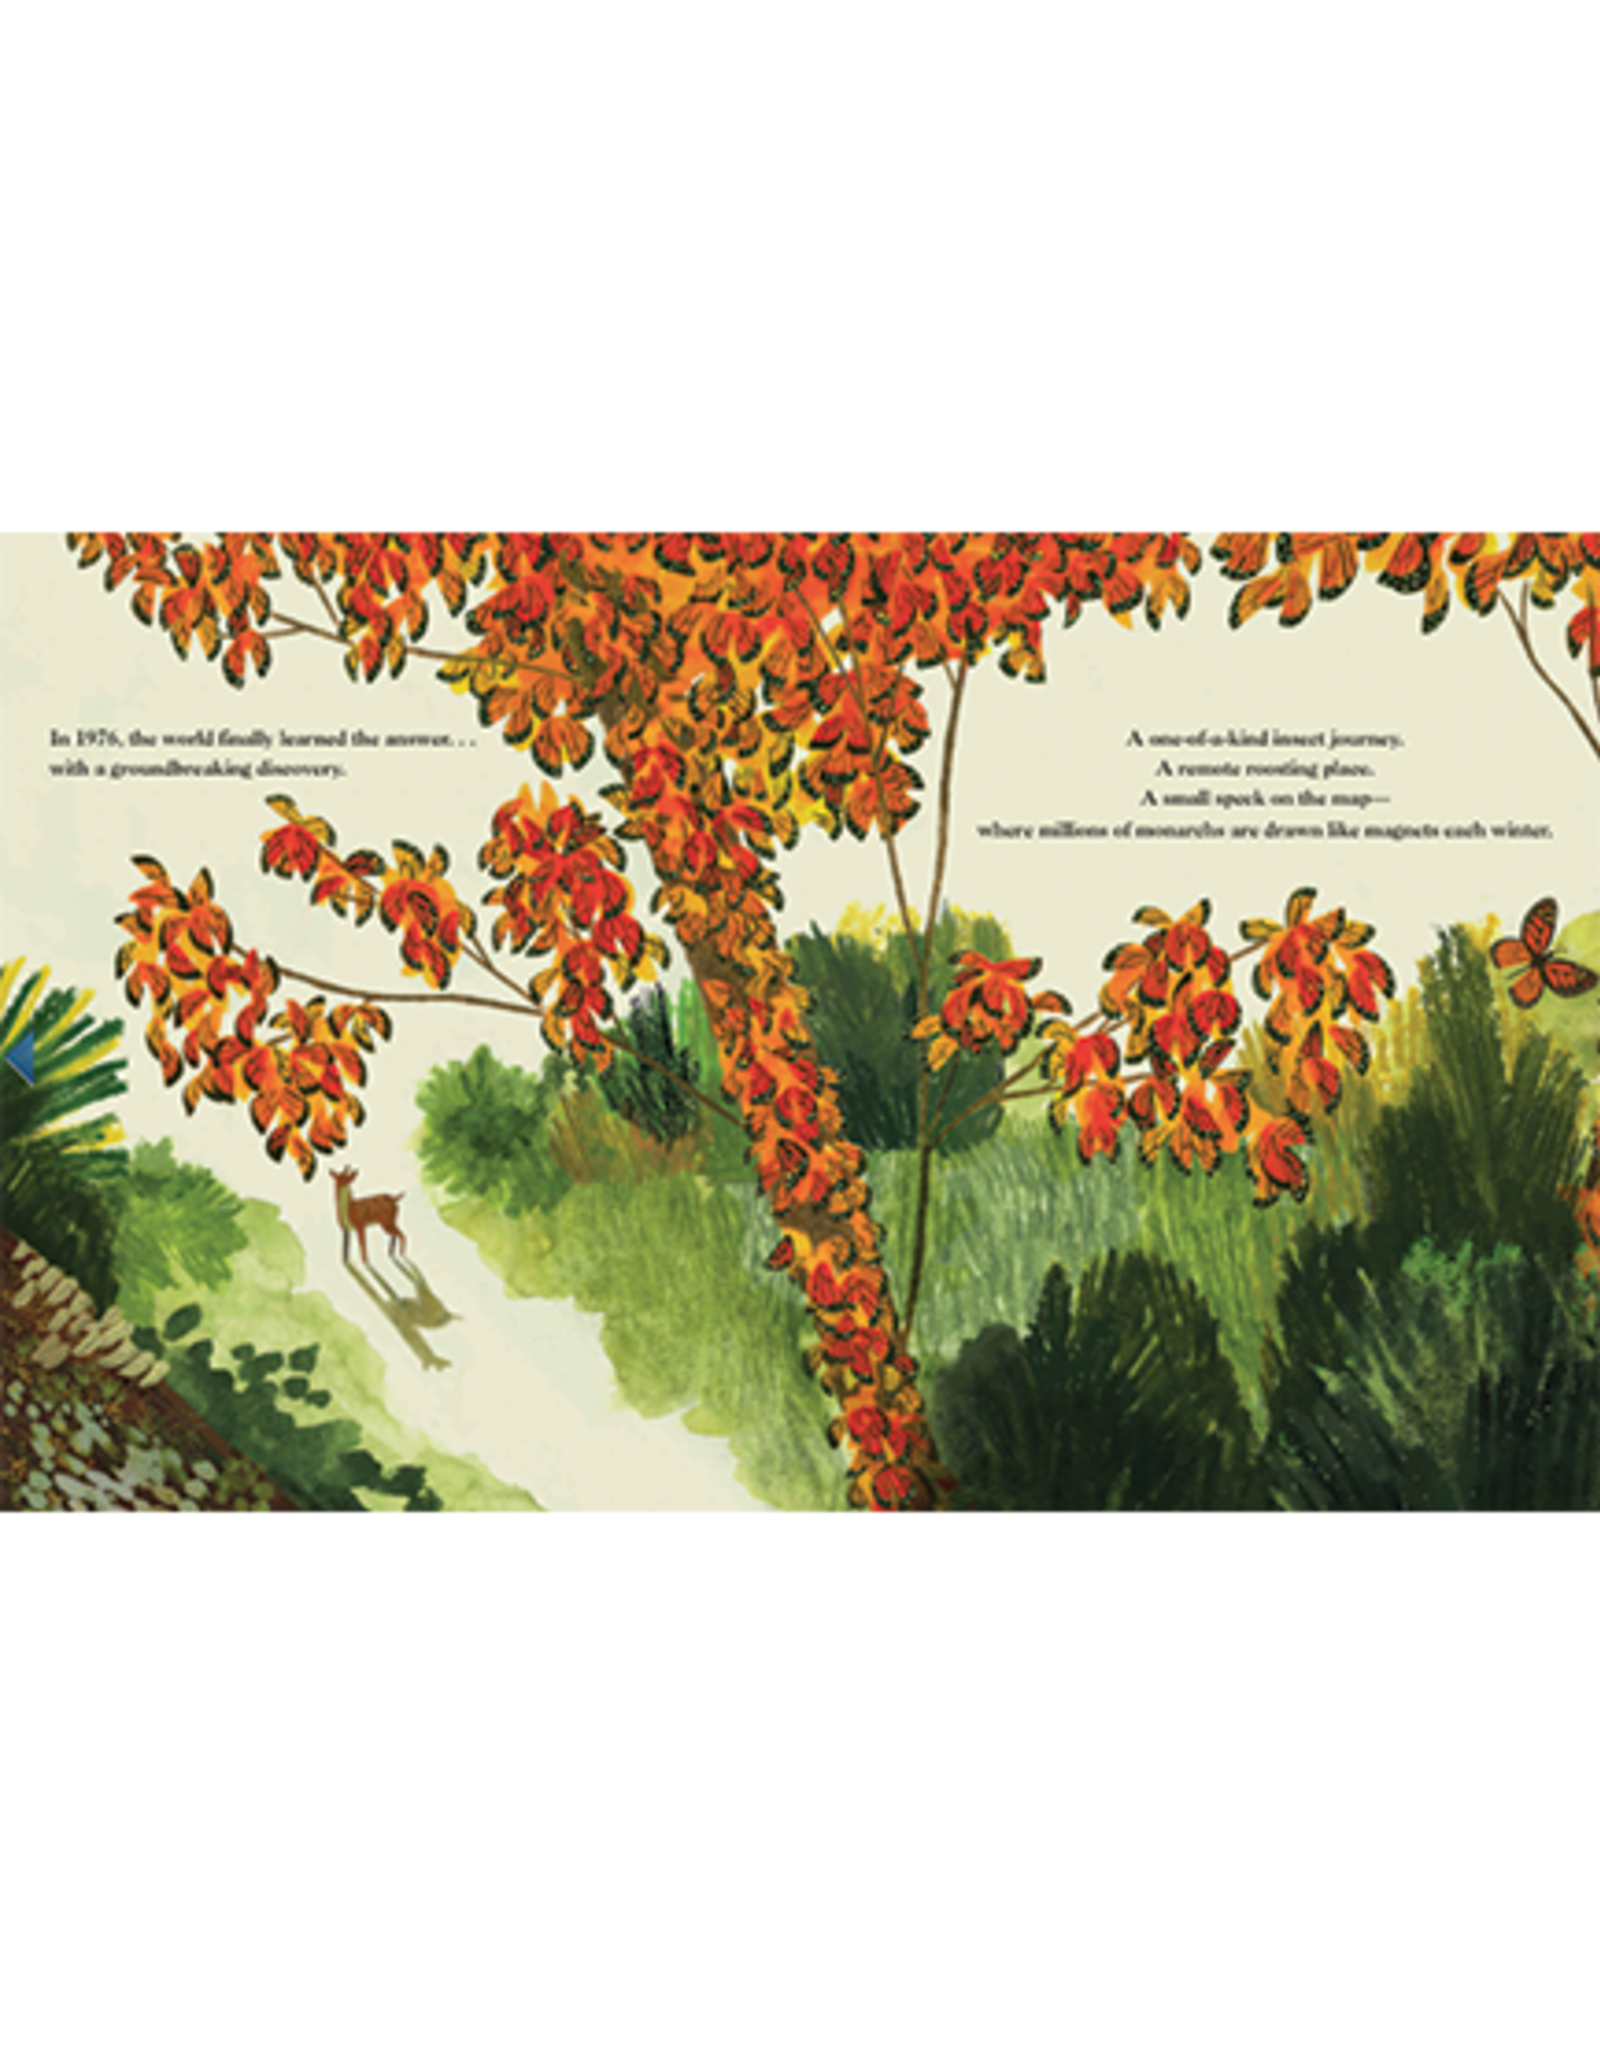 Sleeping Bear Press Winged Wonders: Solving the Monarch Migration Mystery